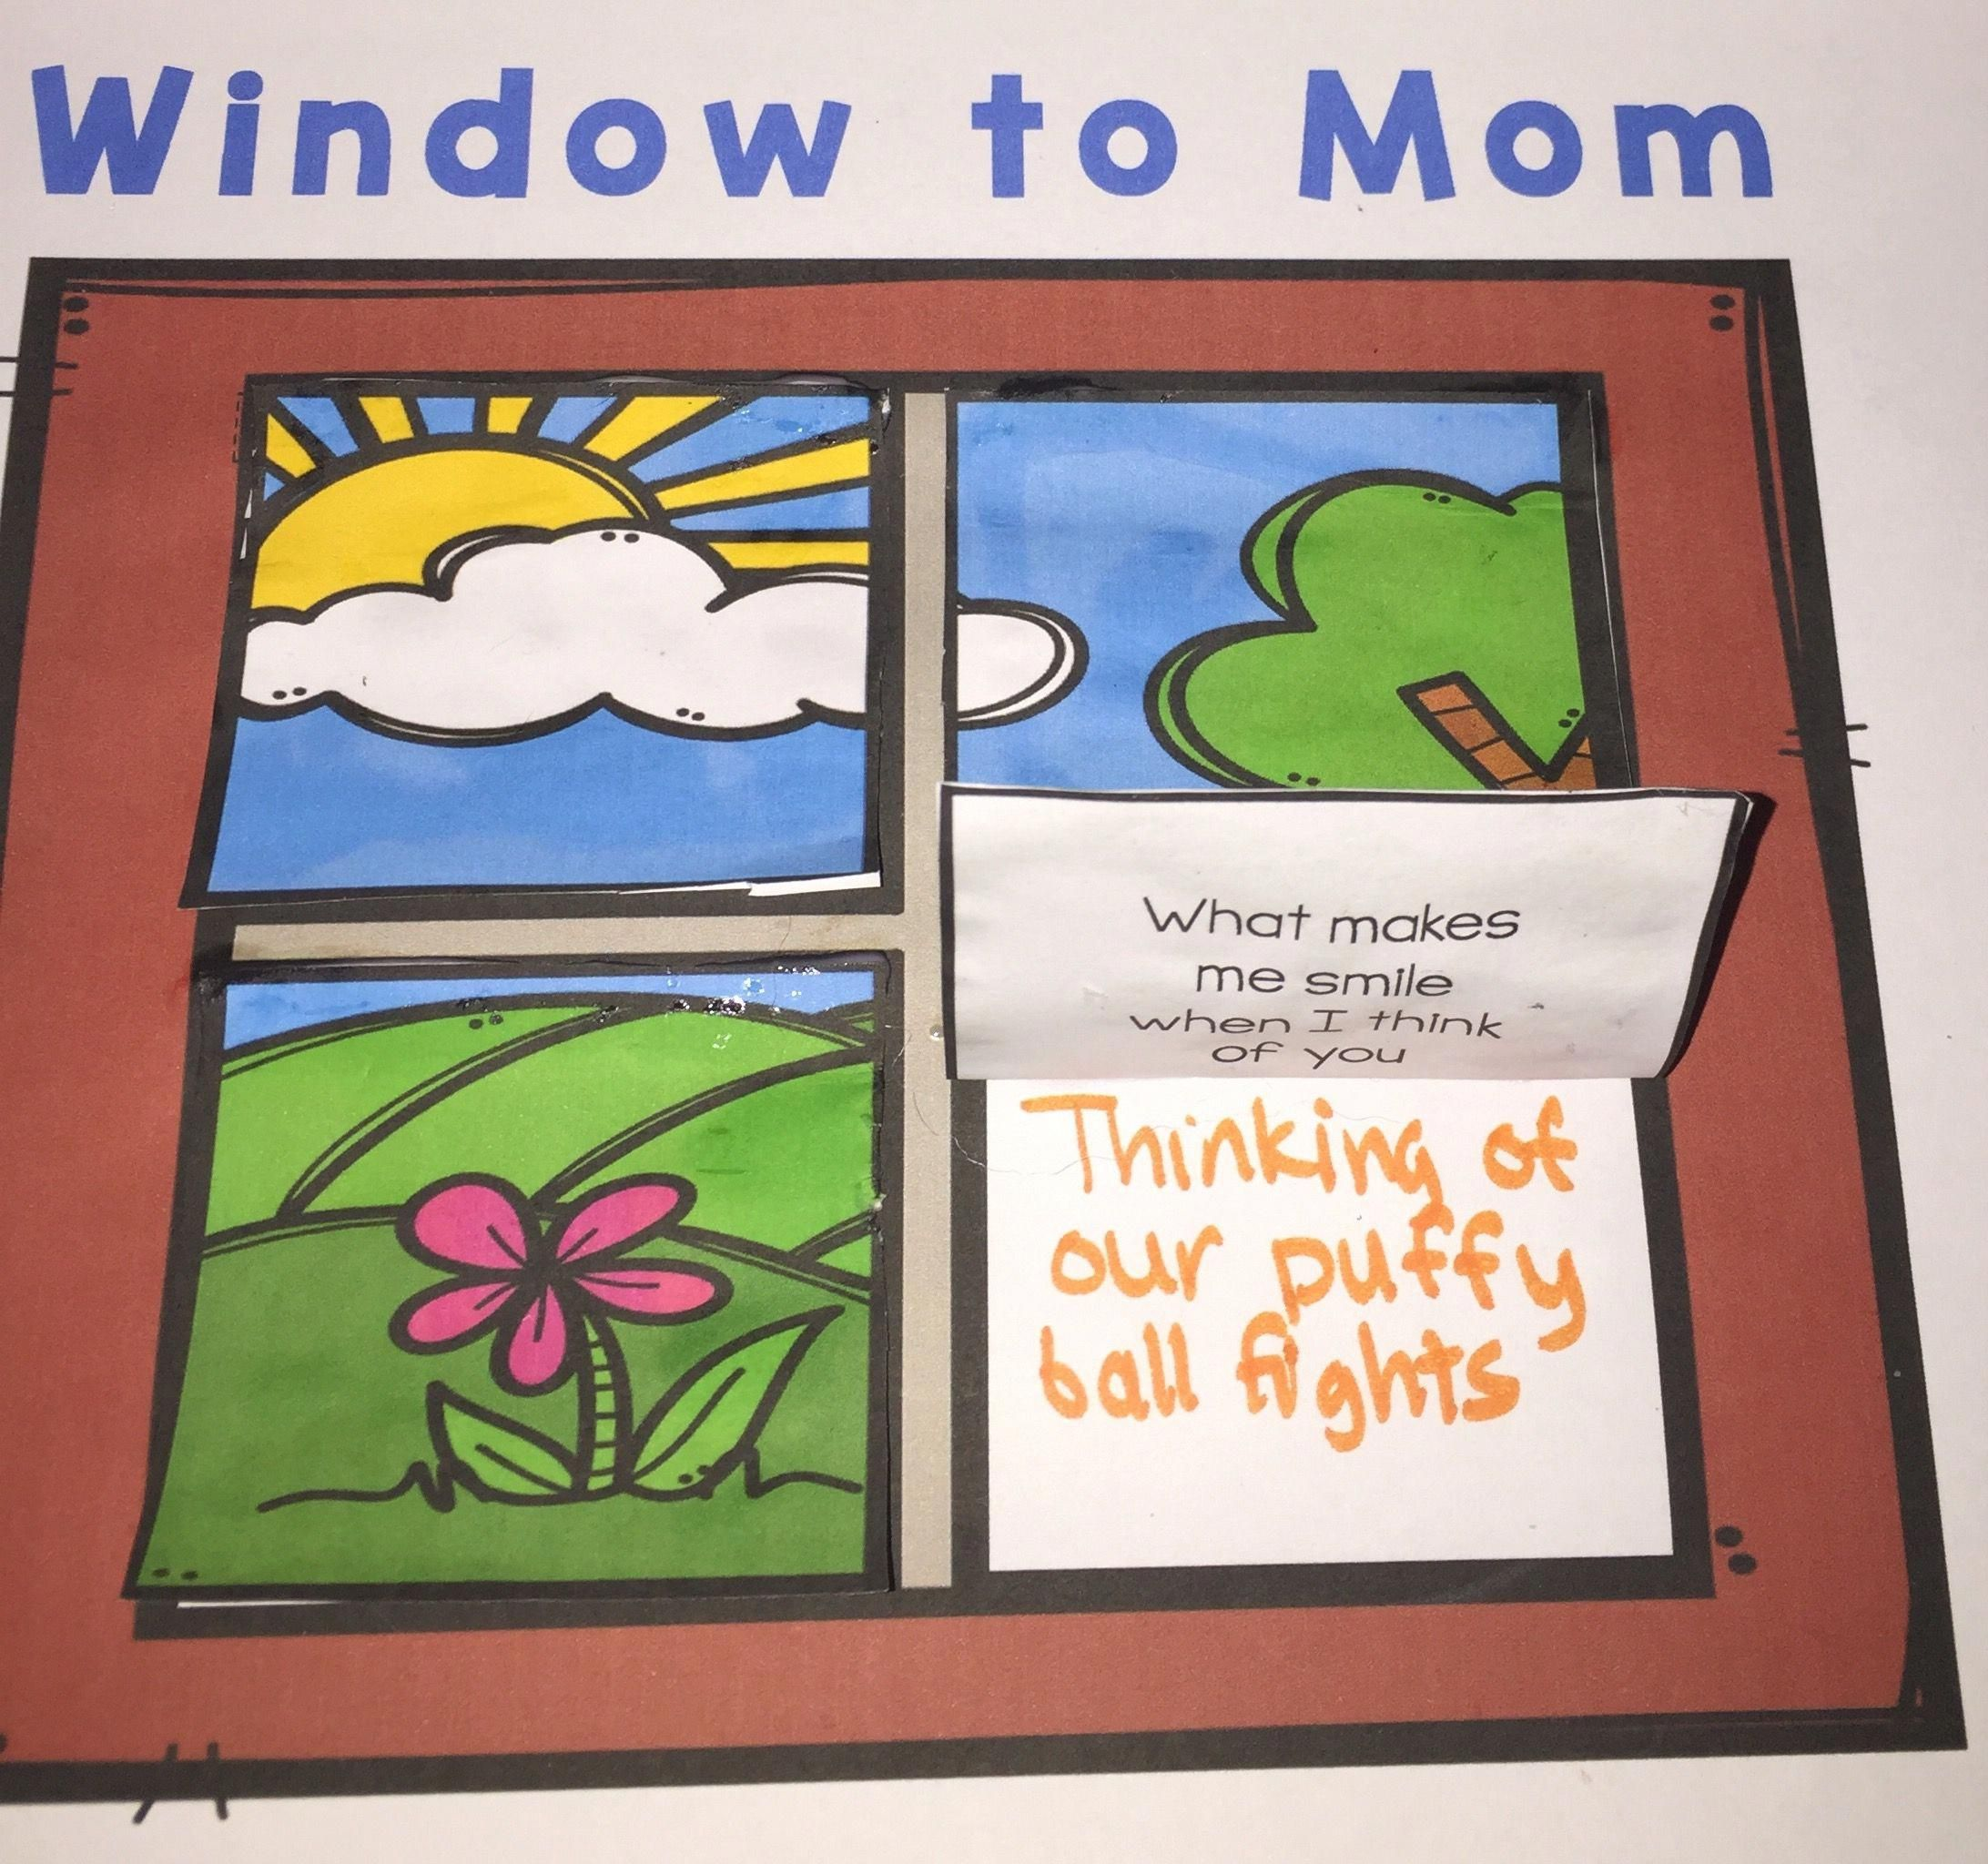 Grief And Loss Memory Crafts For The Loss Of Parents